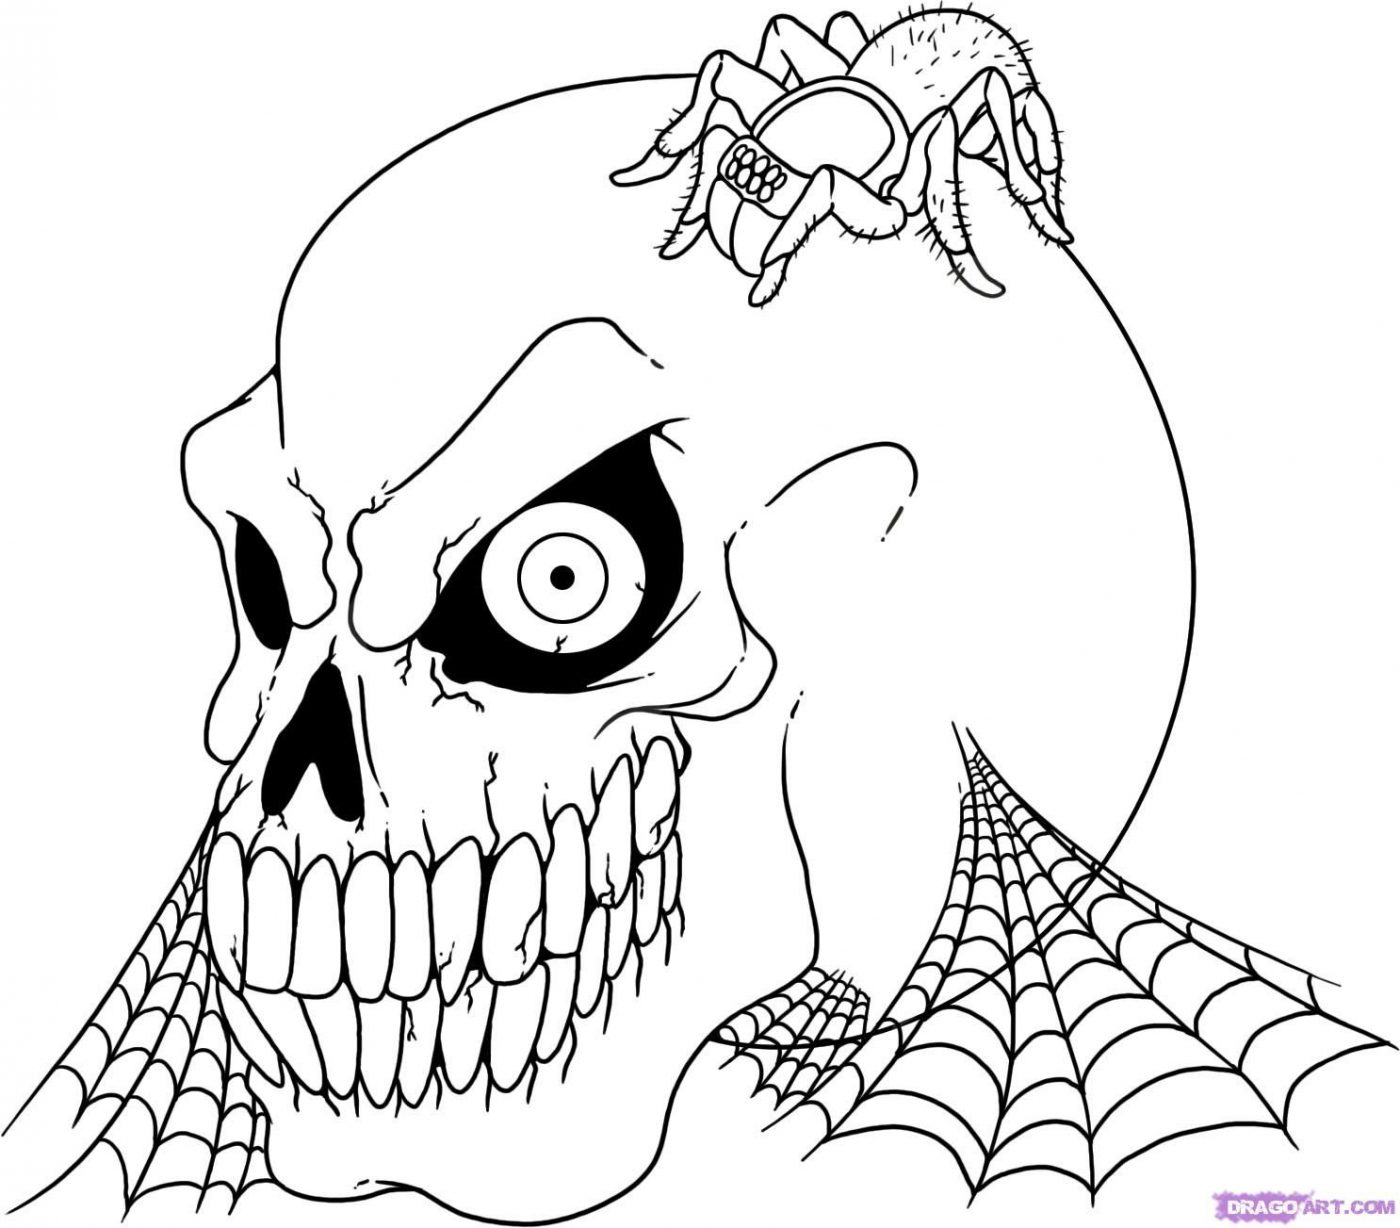 1400x1228 Dinosaurkeleton Coloring Page Pages Photos Ideas Printable